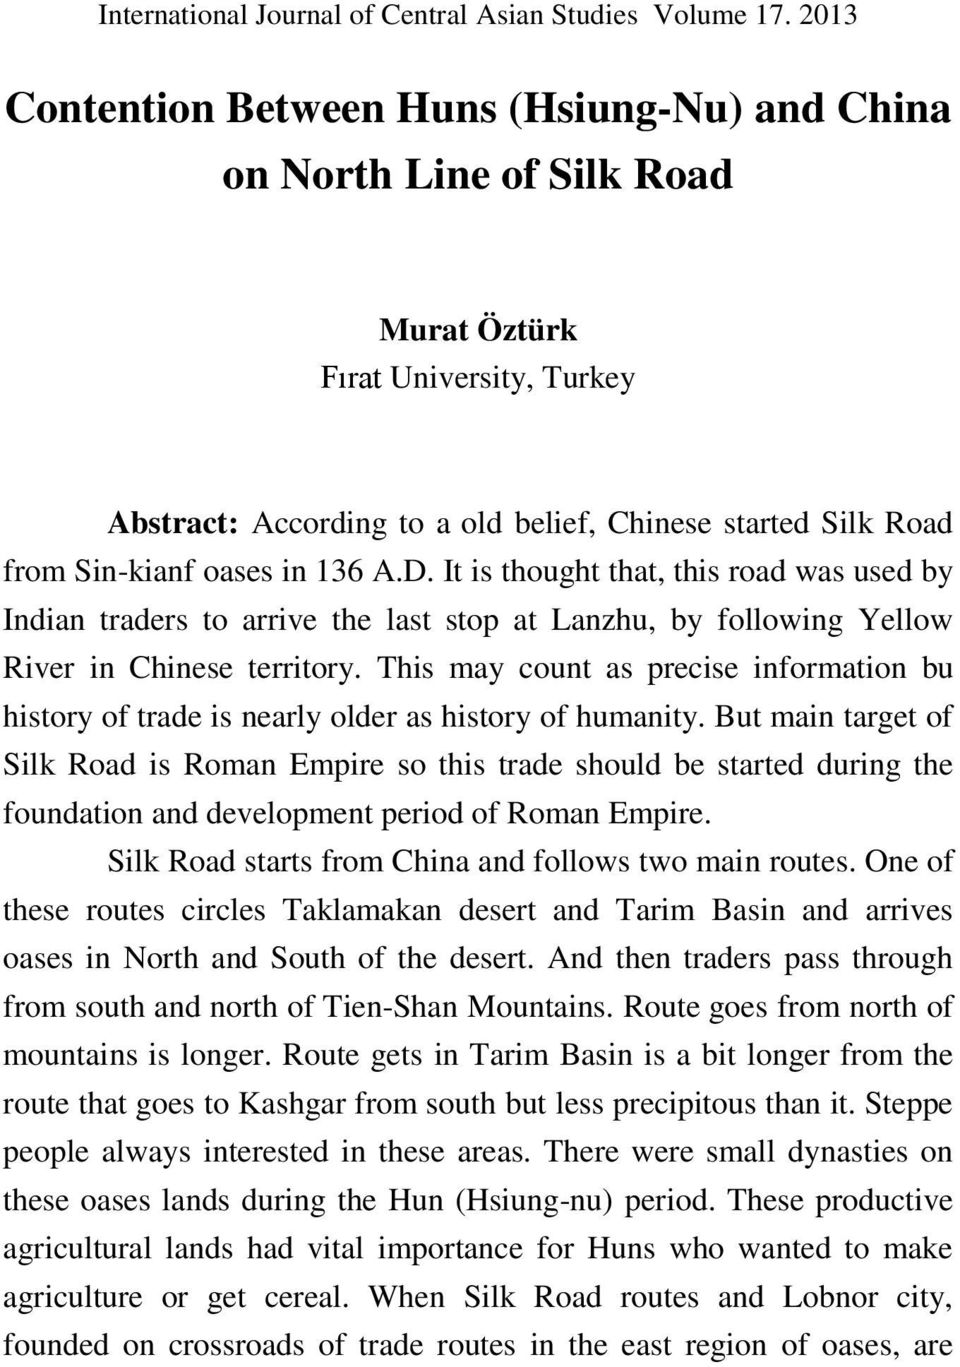 oases in 136 A.D. It is thought that, this road was used by Indian traders to arrive the last stop at Lanzhu, by following Yellow River in Chinese territory.